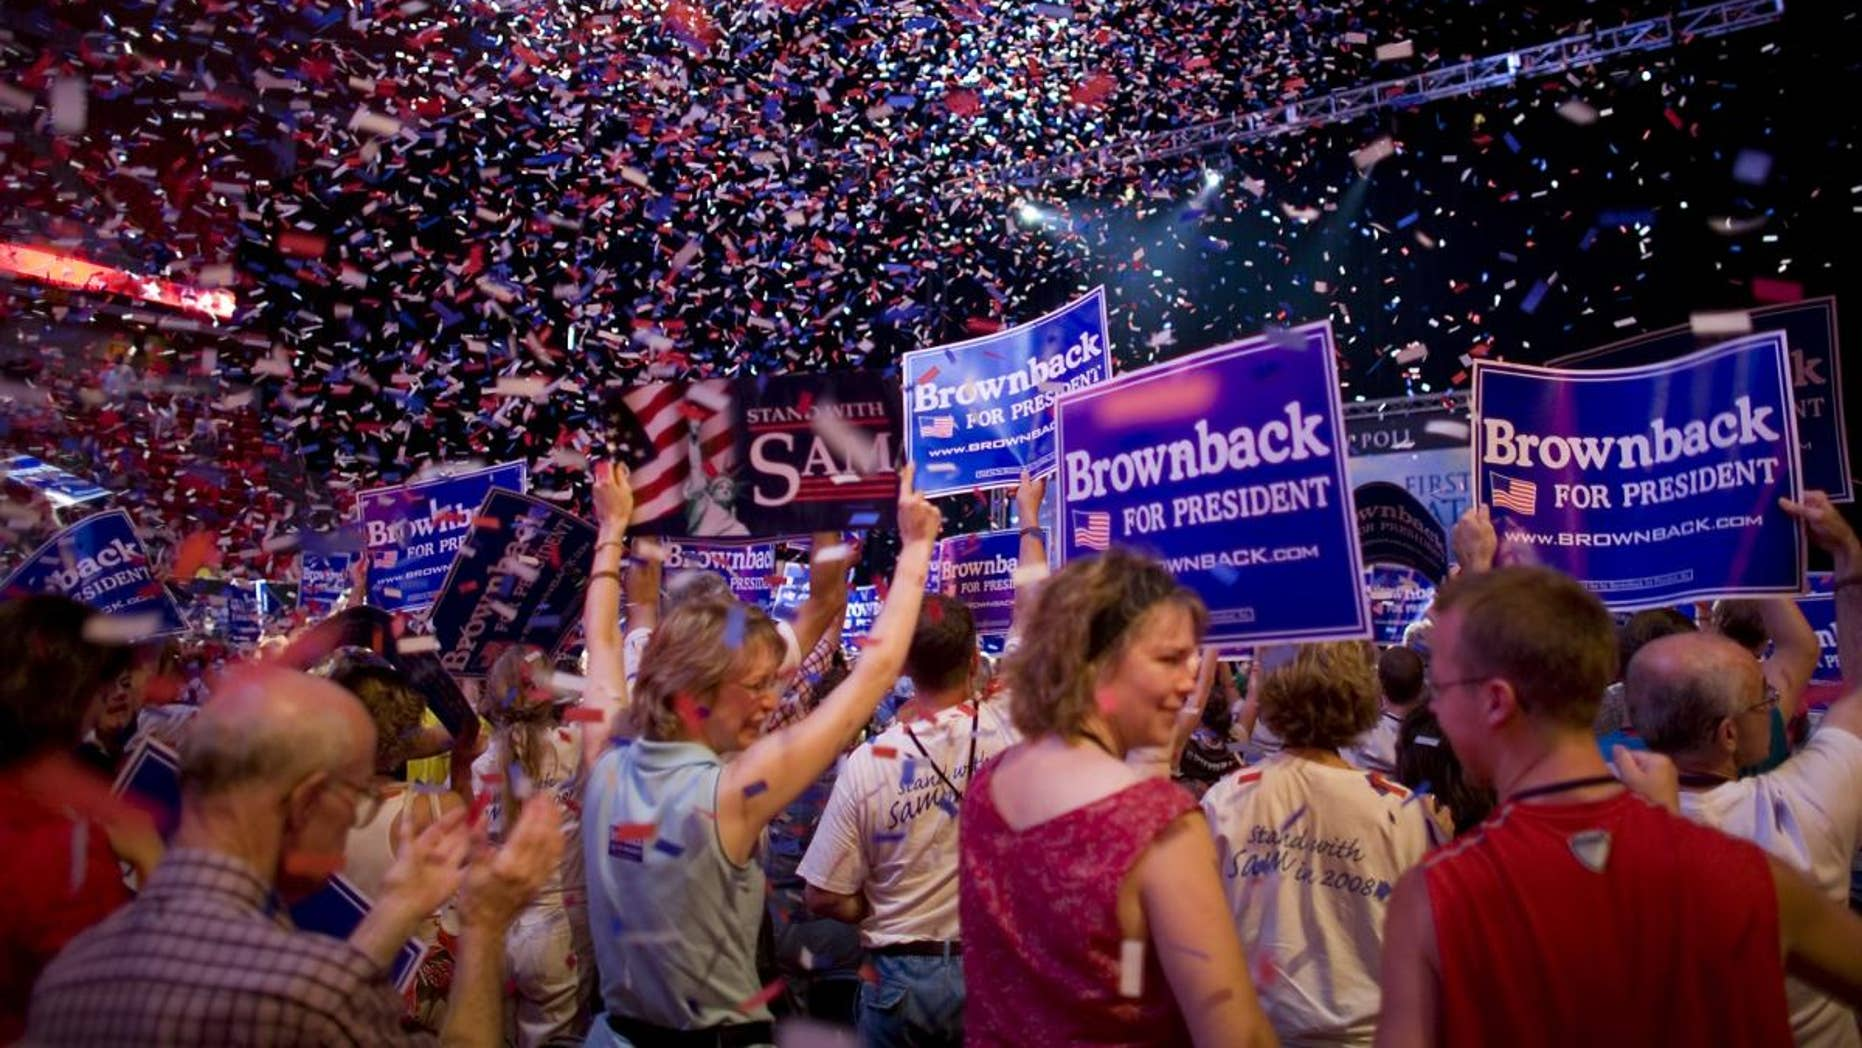 FILE -- Supporters of presidential hopeful U.S. Sen. Sam Brownback, R-Kan., cheer as confetti falls after Brownback finished speaking at the Iowa Straw Poll in Ames, Iowa, Saturday, Aug 11, 2007. (AP File Photo/David Lienemann)